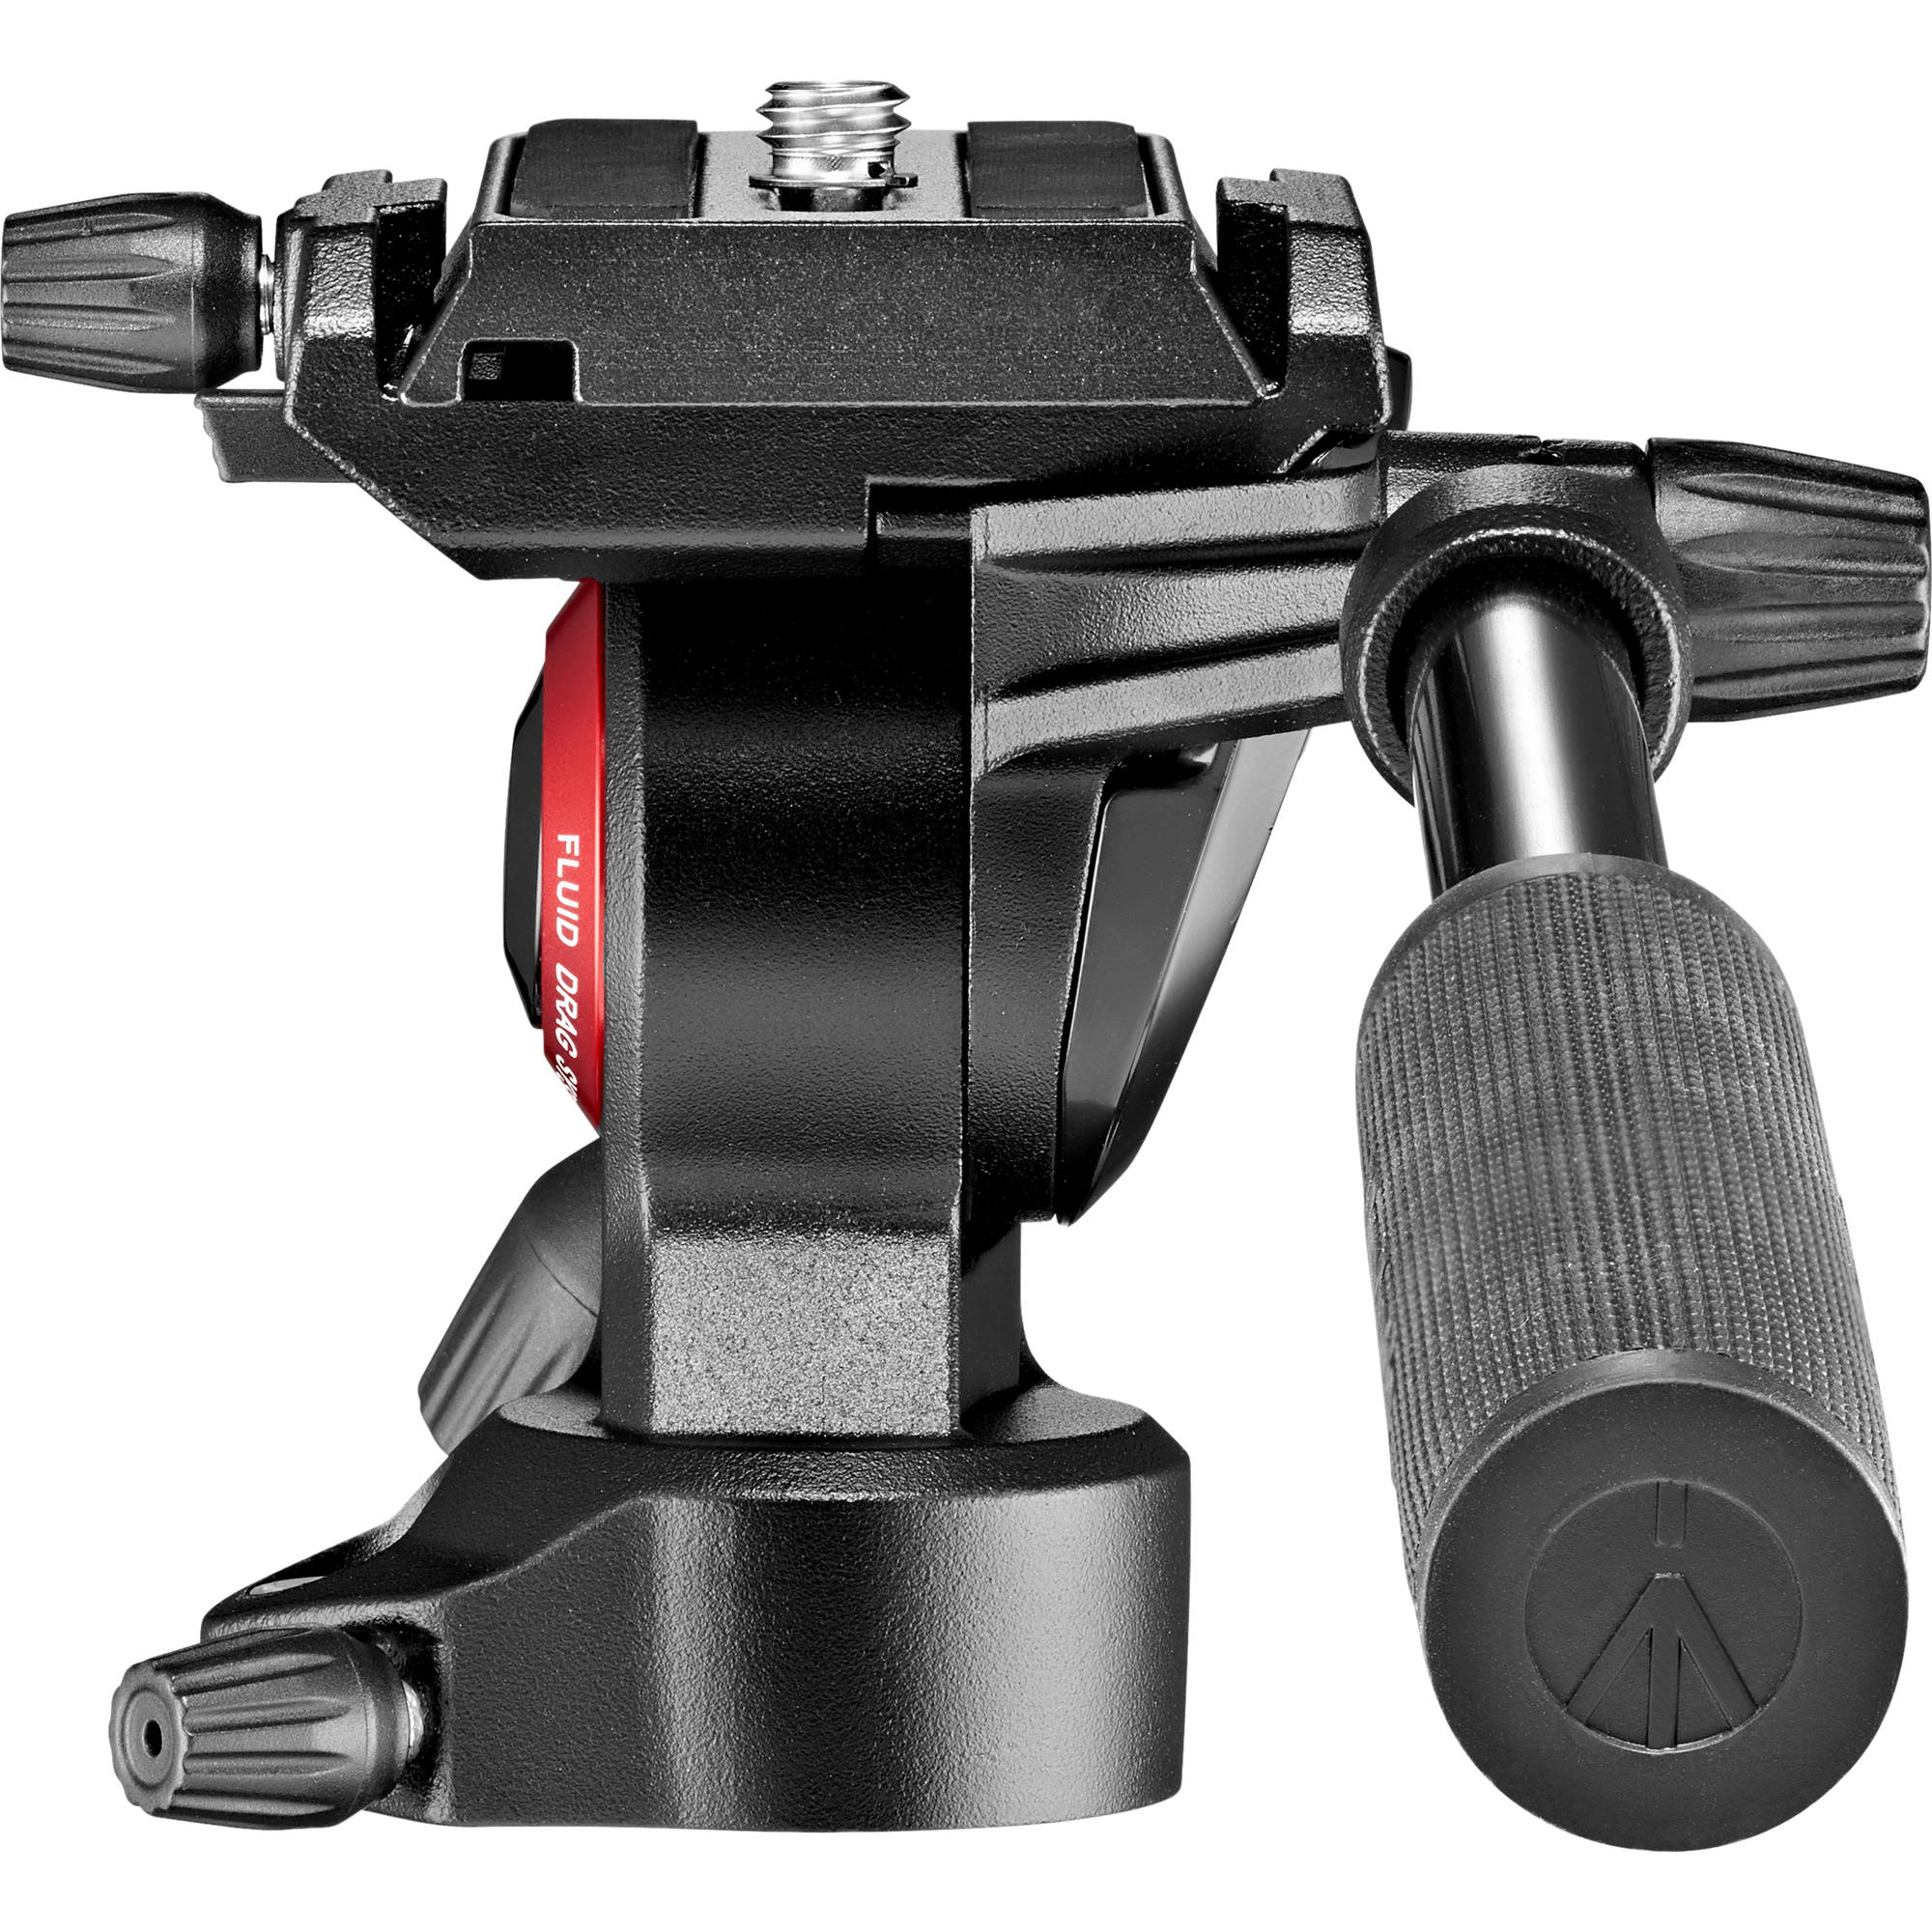 Manfrotto Befree Live Video Head